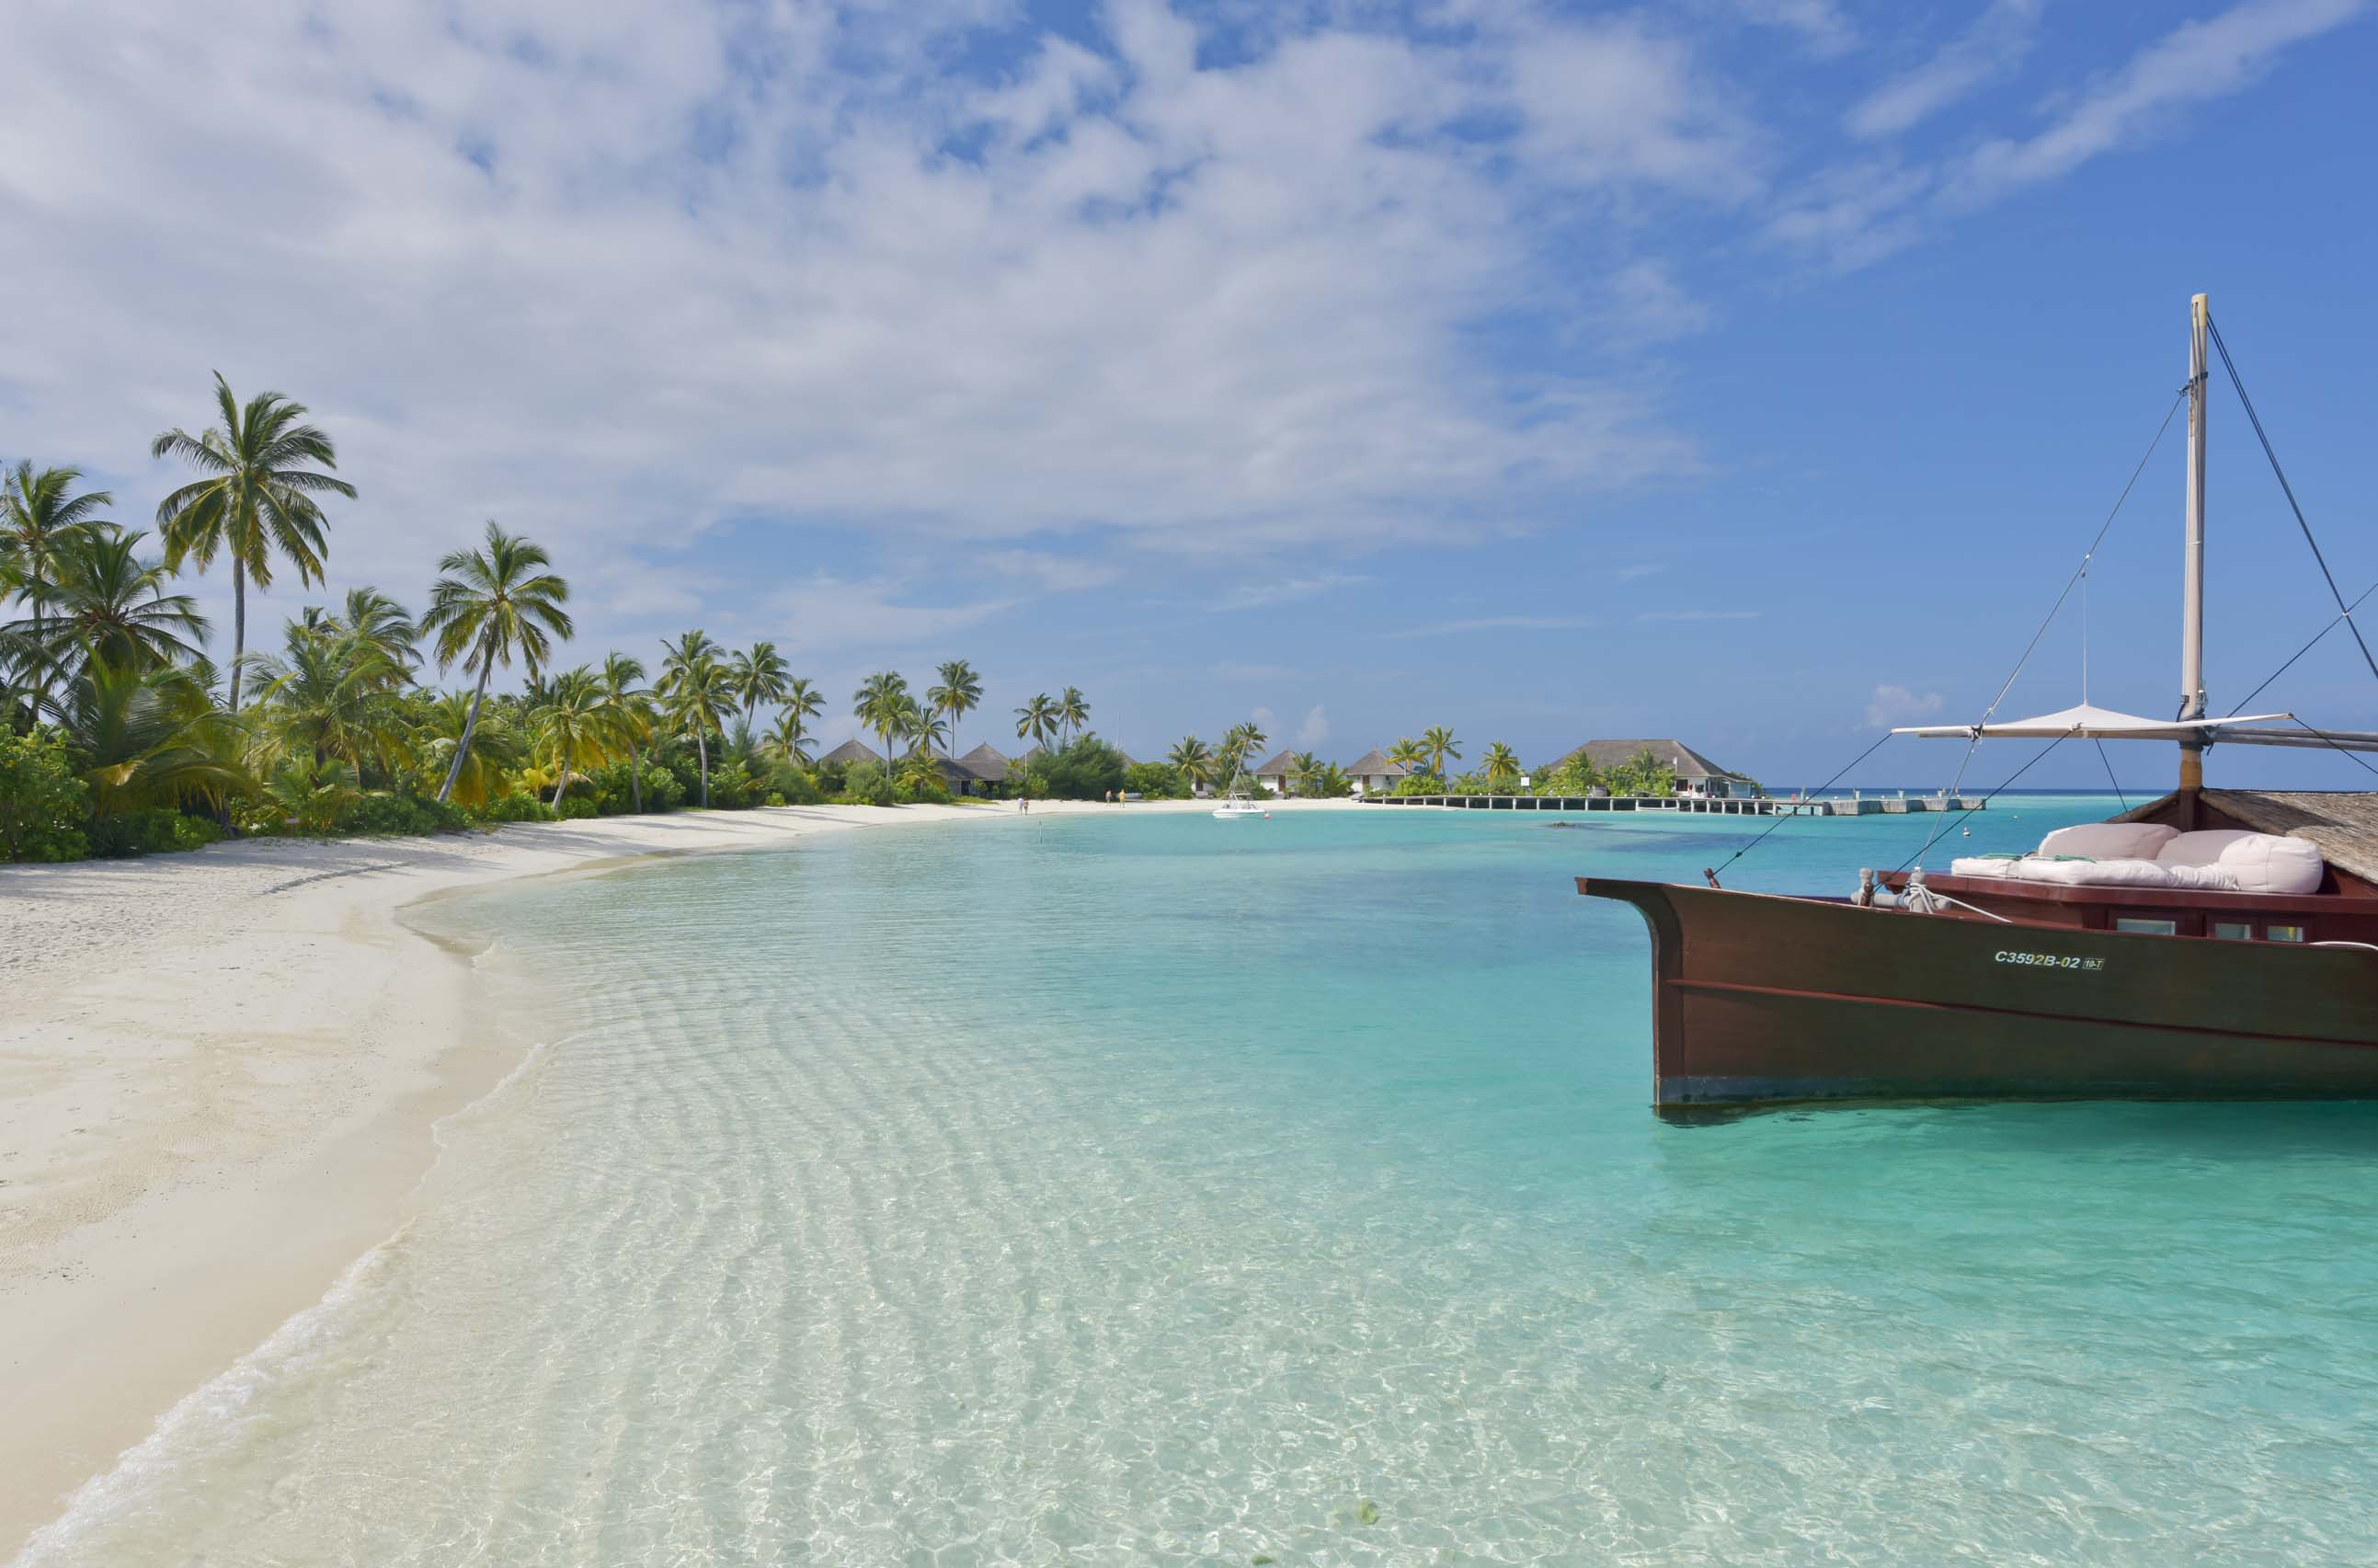 The crystal clear beach in Safari Island, Resort & Spa